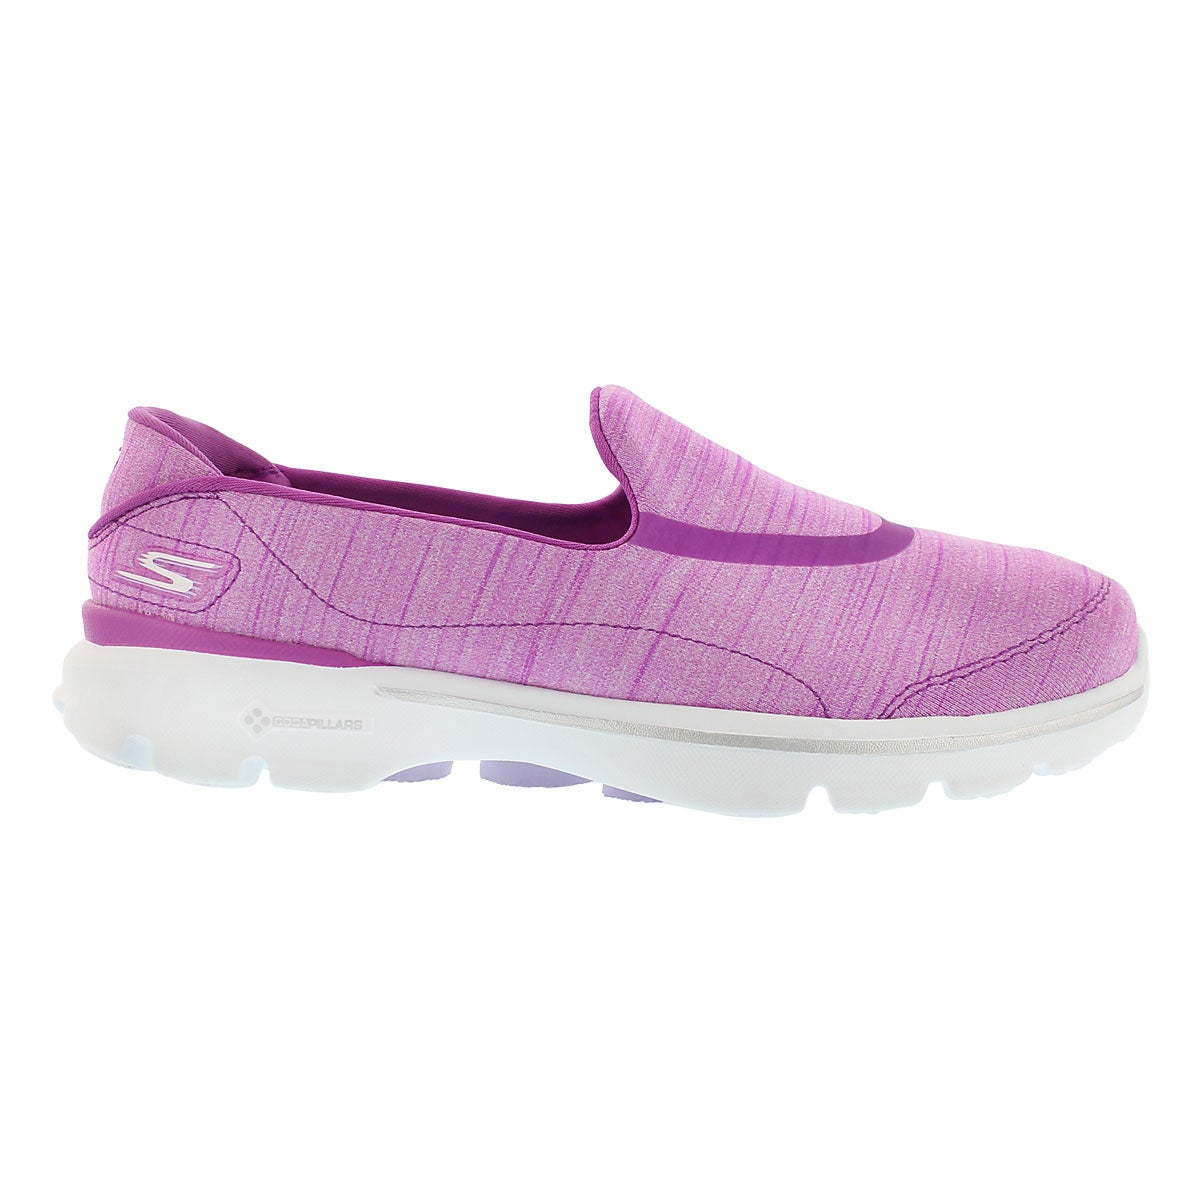 Lds GOwalk 3 purple walking shoe